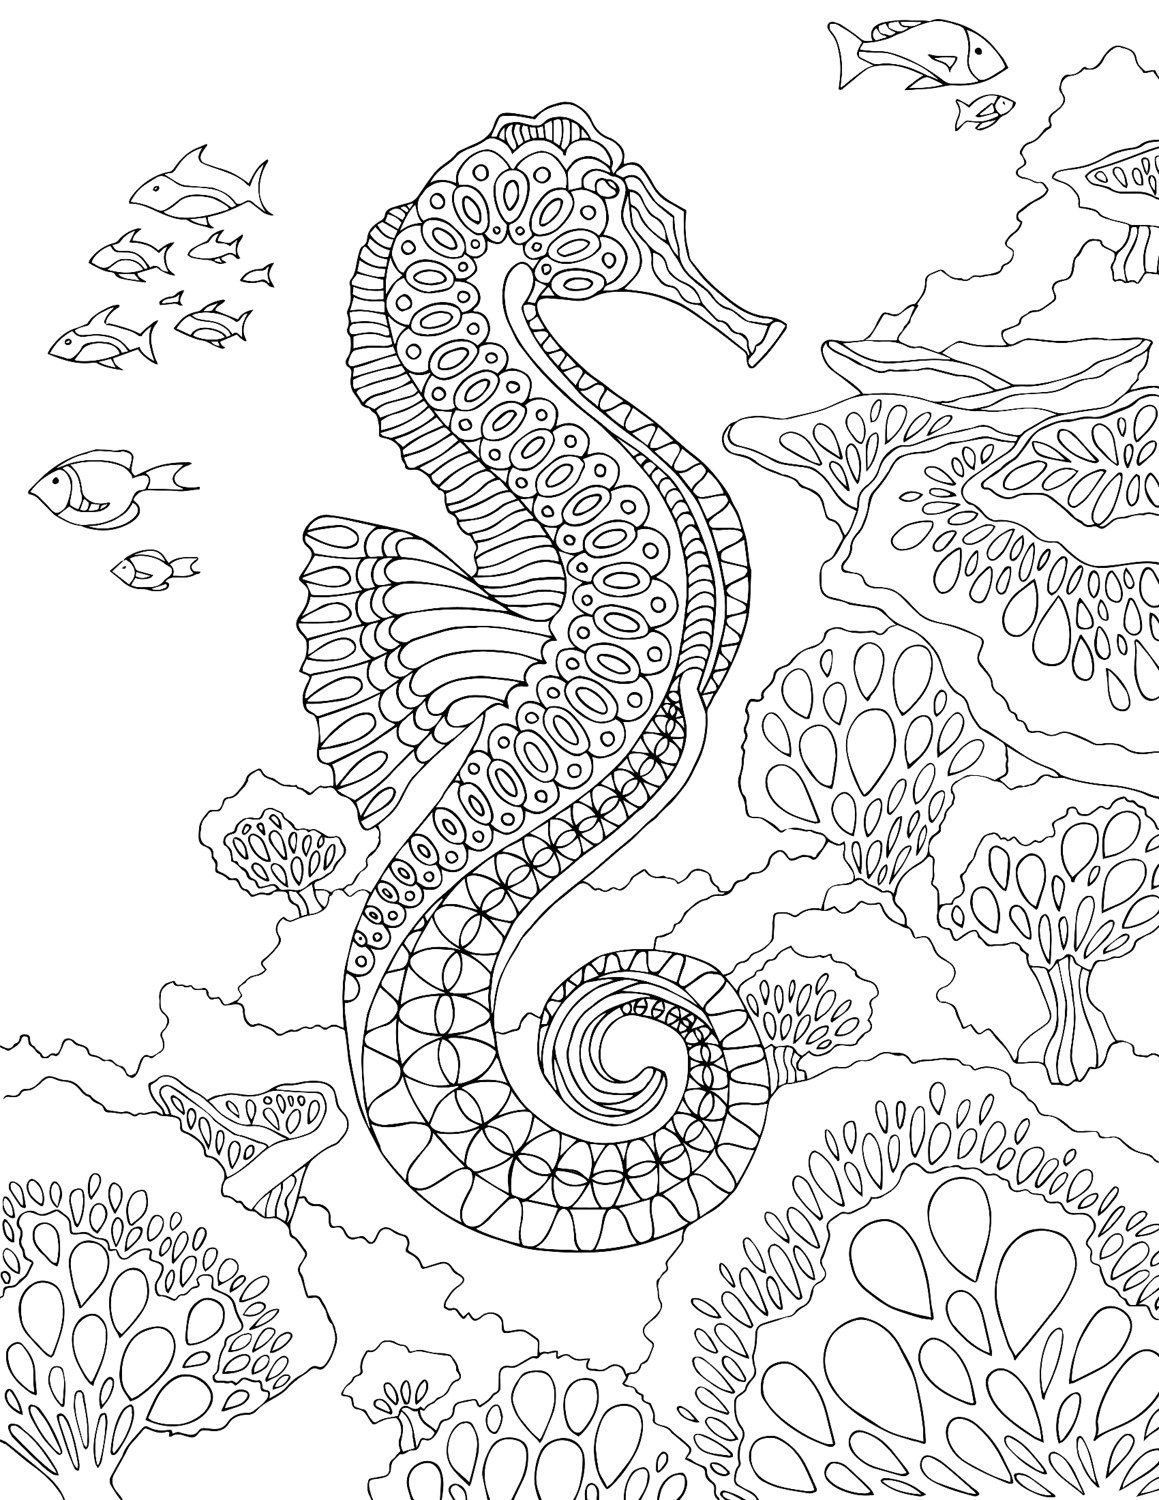 Seahorse - PDF Zentangle Coloring Page - Therapy Coloring - Under ...